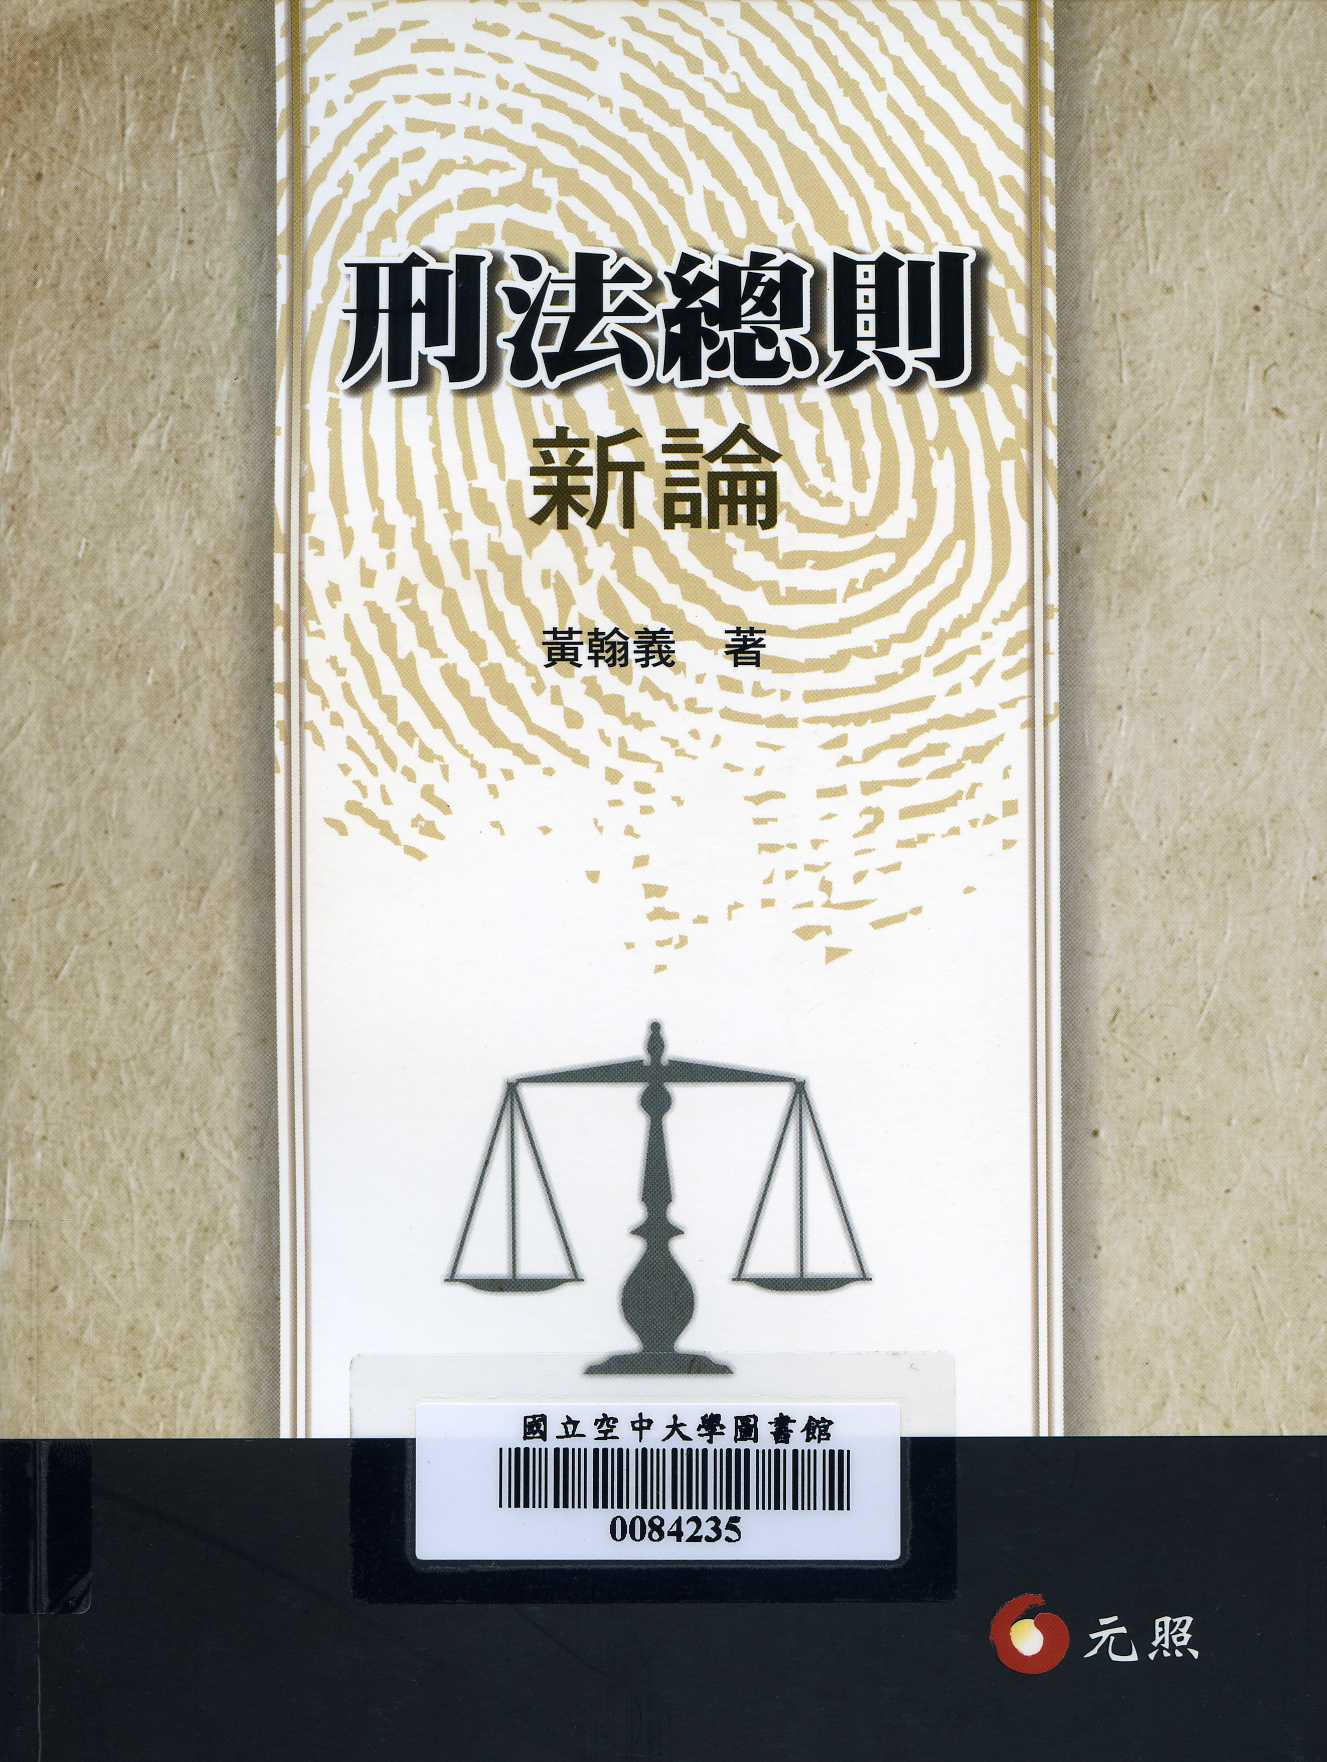 刑法總則新論 = The new thesis for general principles of criminal law.